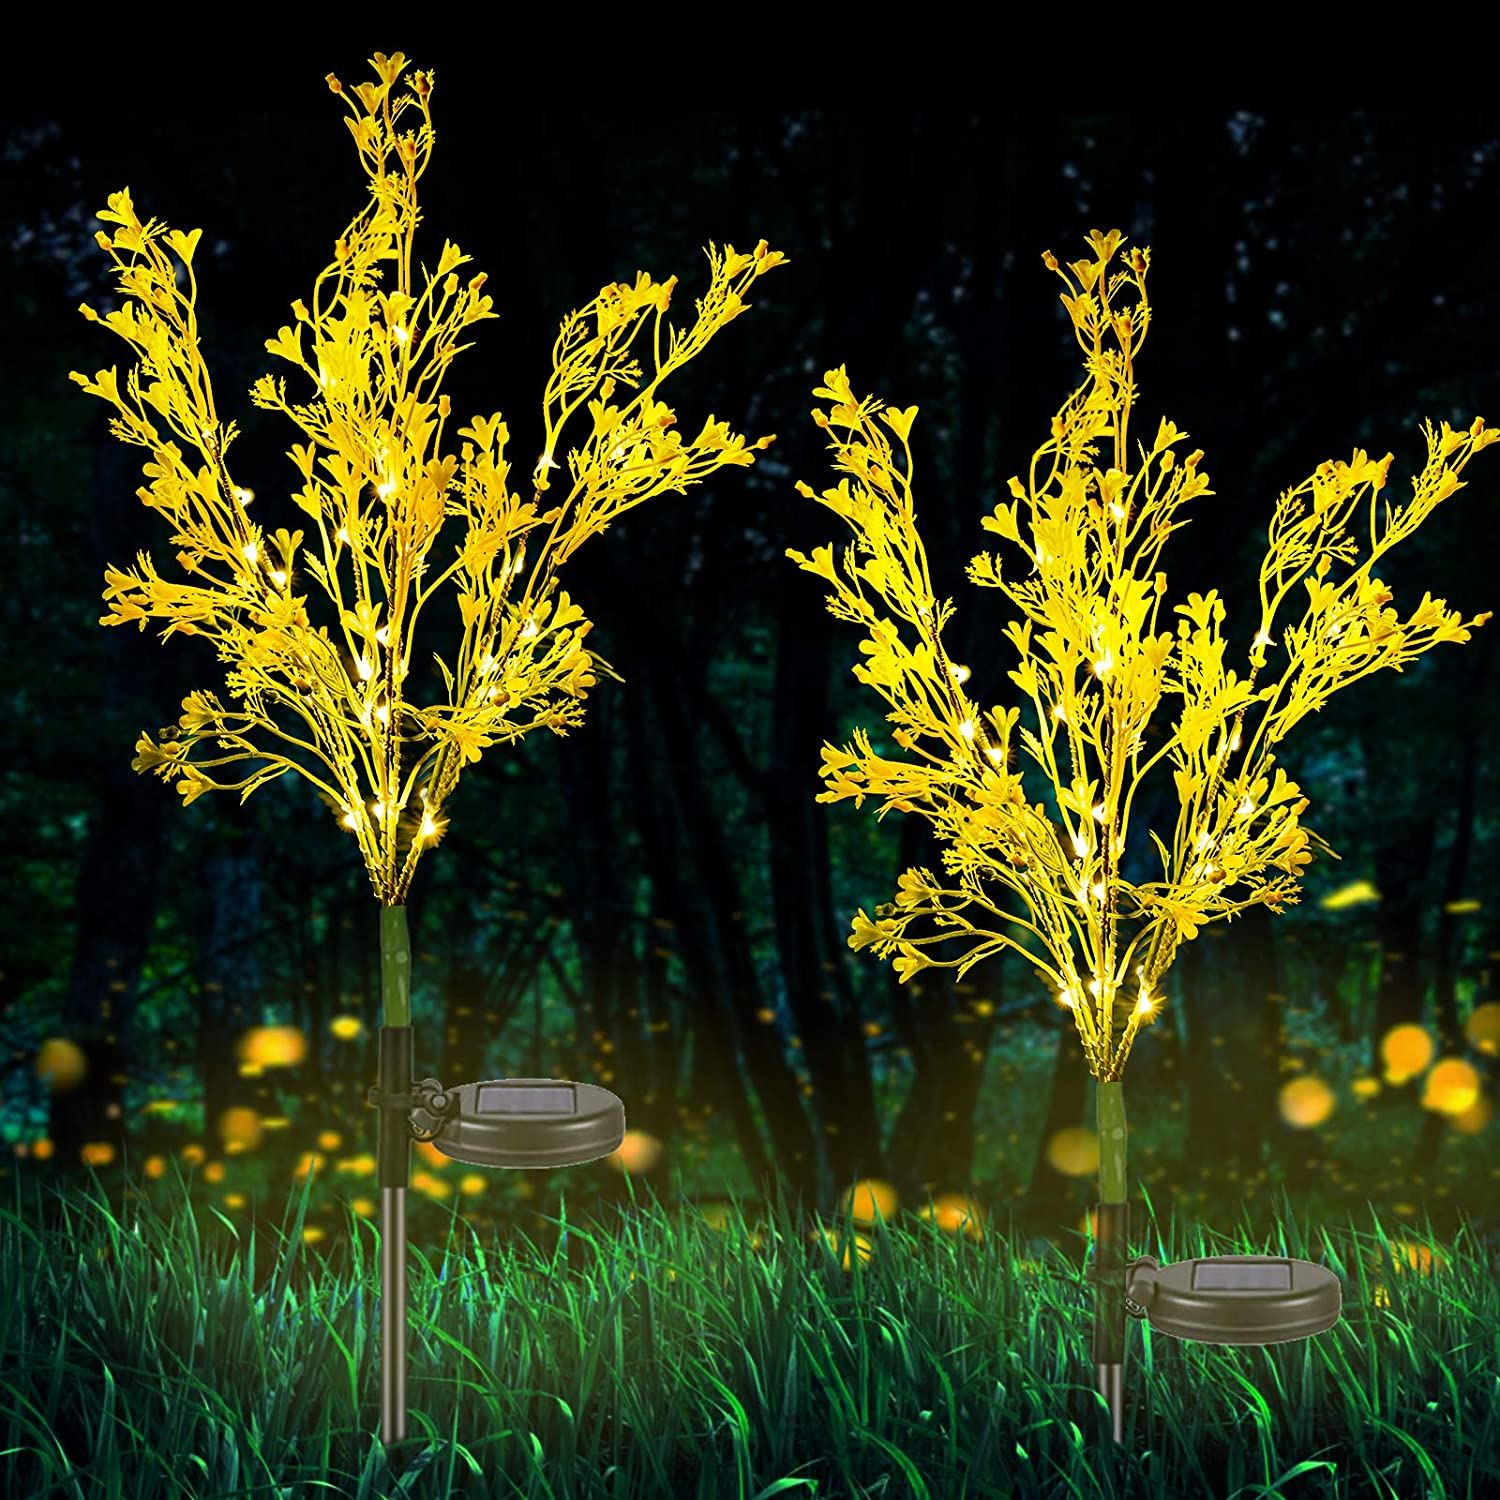 Neporal Solar Garden Lights Outdoor Decorative, Solar Flowers Lights Dusk to Dawn, Solar Garden Stake Lights Waterproof IP65, Solar Powered Flower Lights for Patio, Garden, Yard, Lawn, Pathway